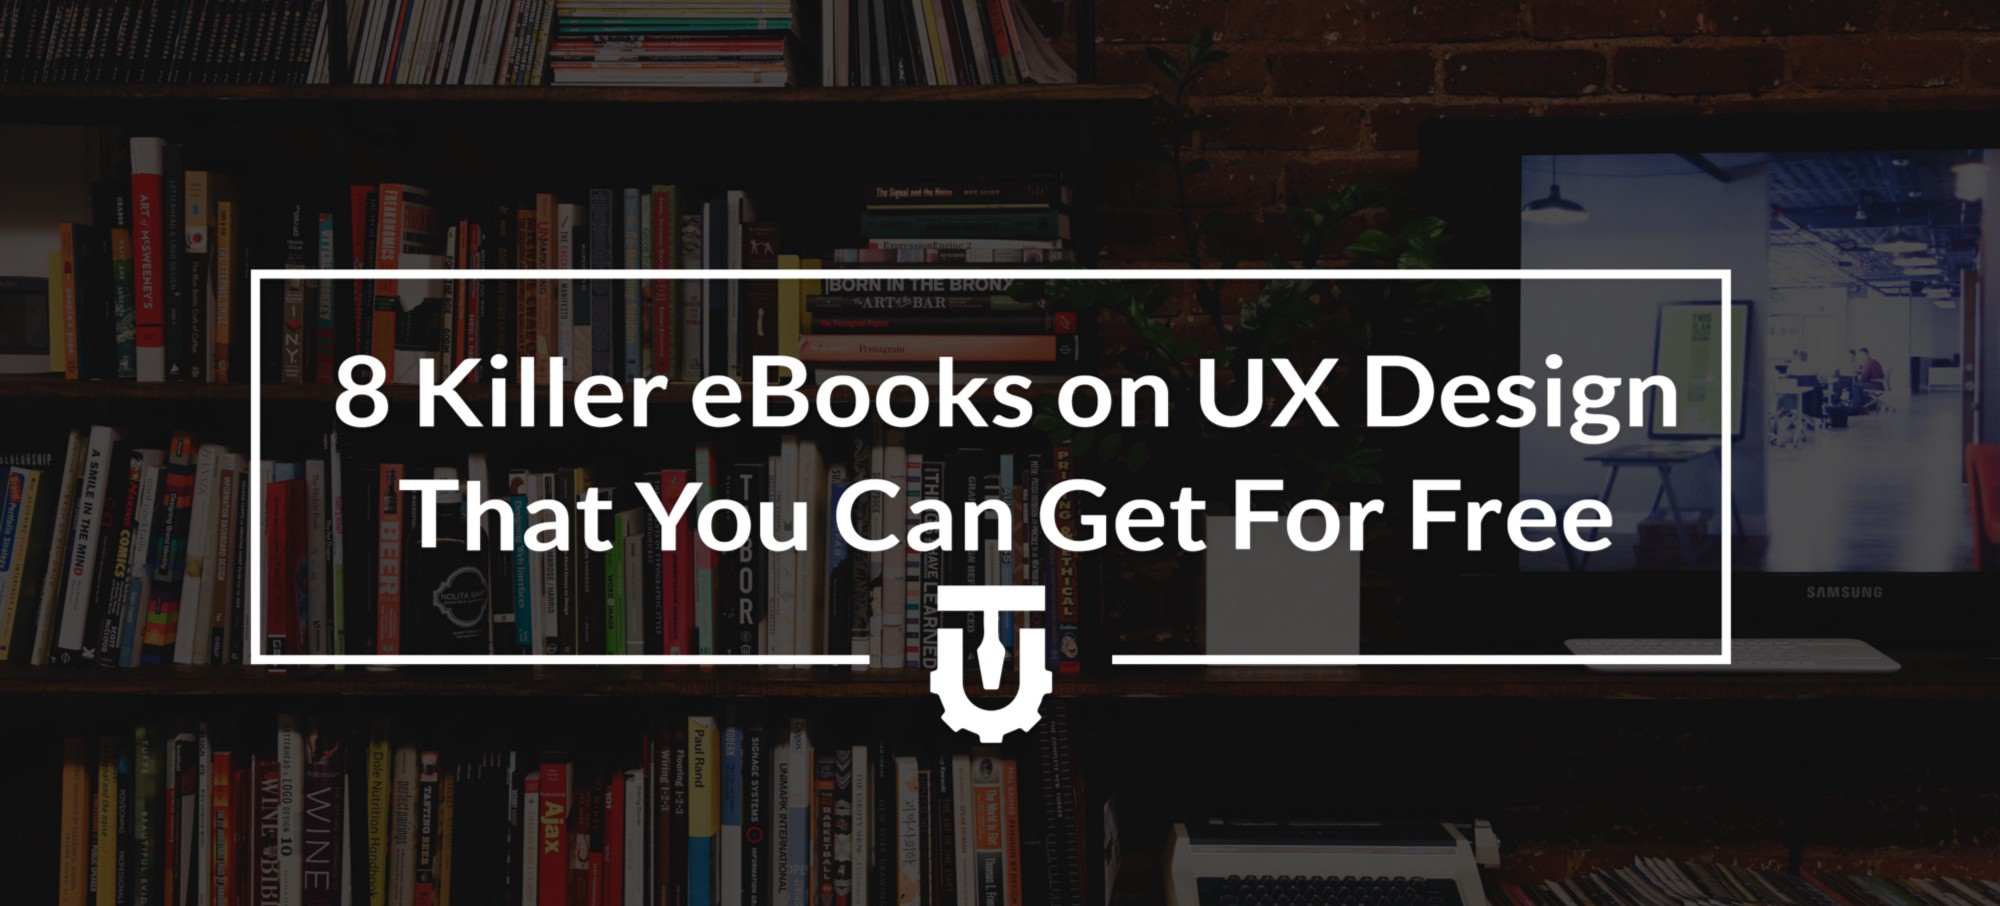 8 Killer eBooks on UX Design That You Can Get For Free